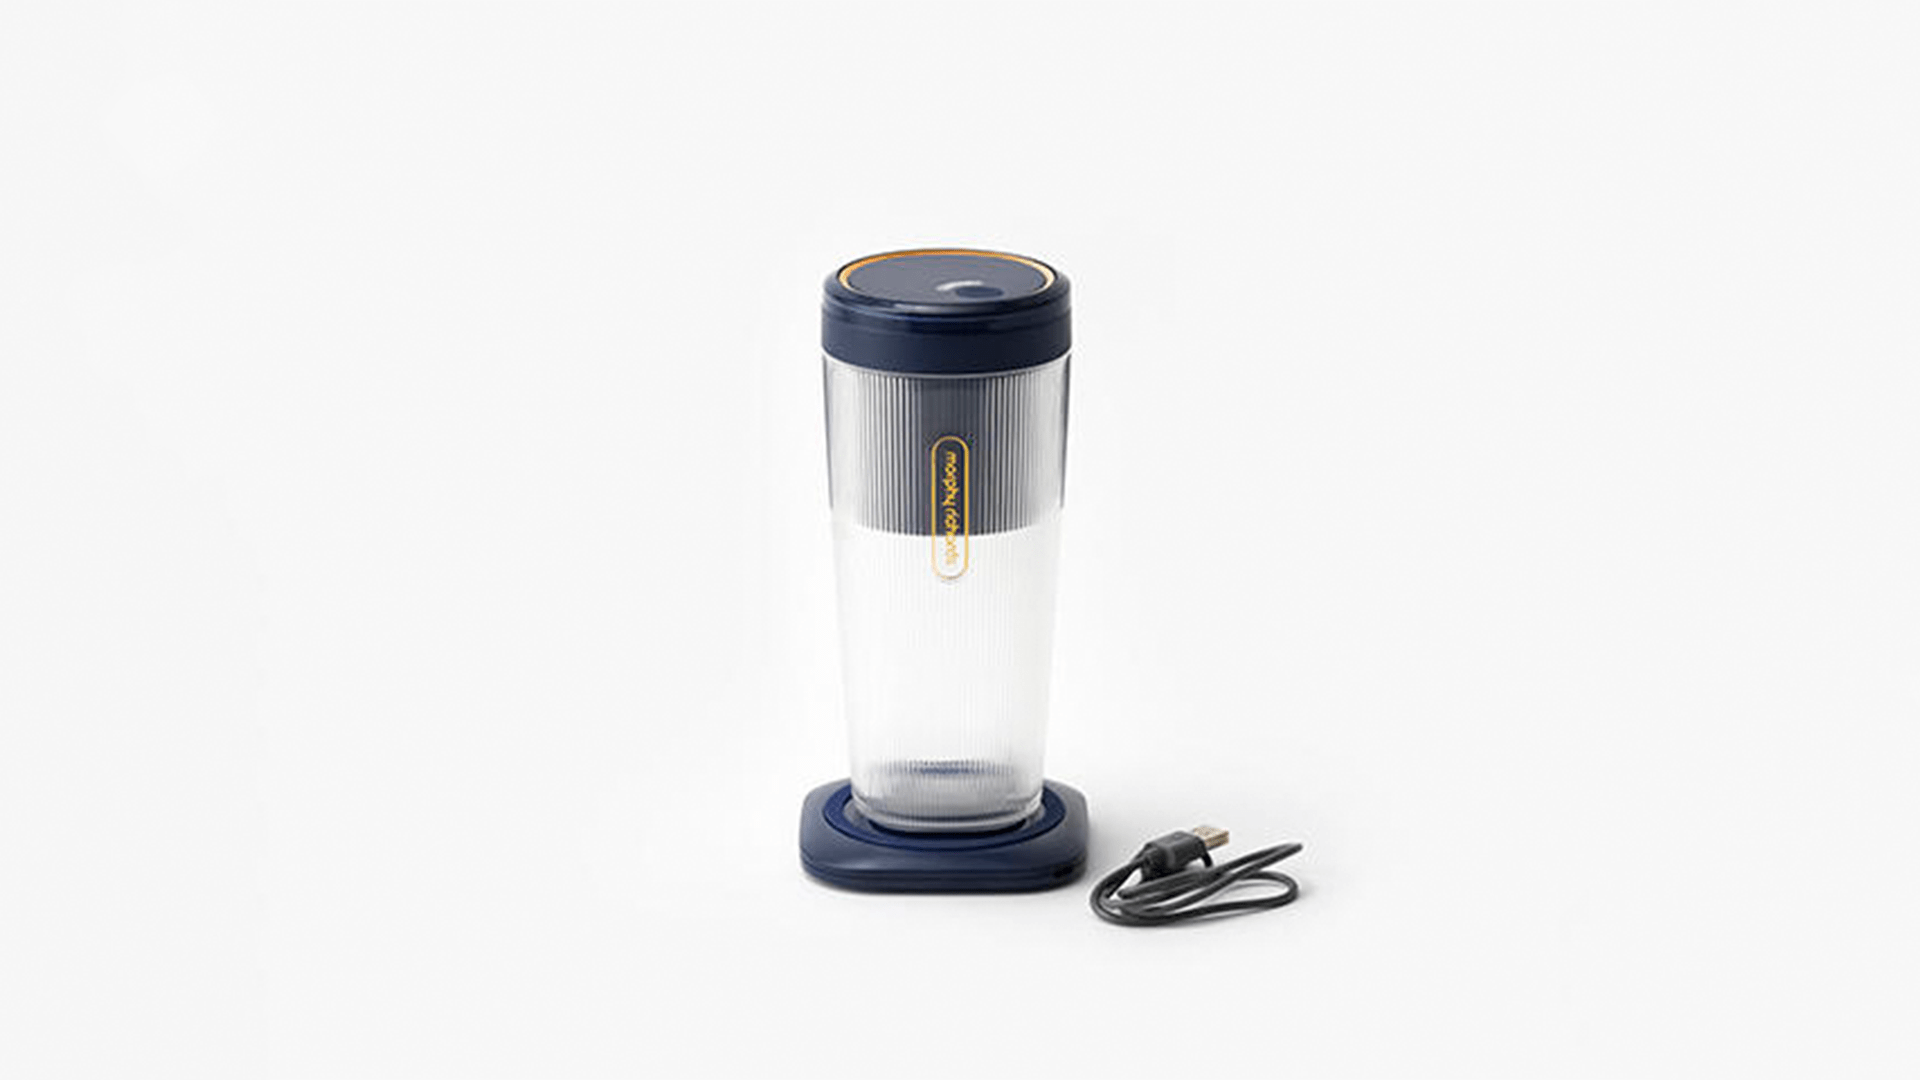 Portable Juicer 2.0 18 - Sneapy